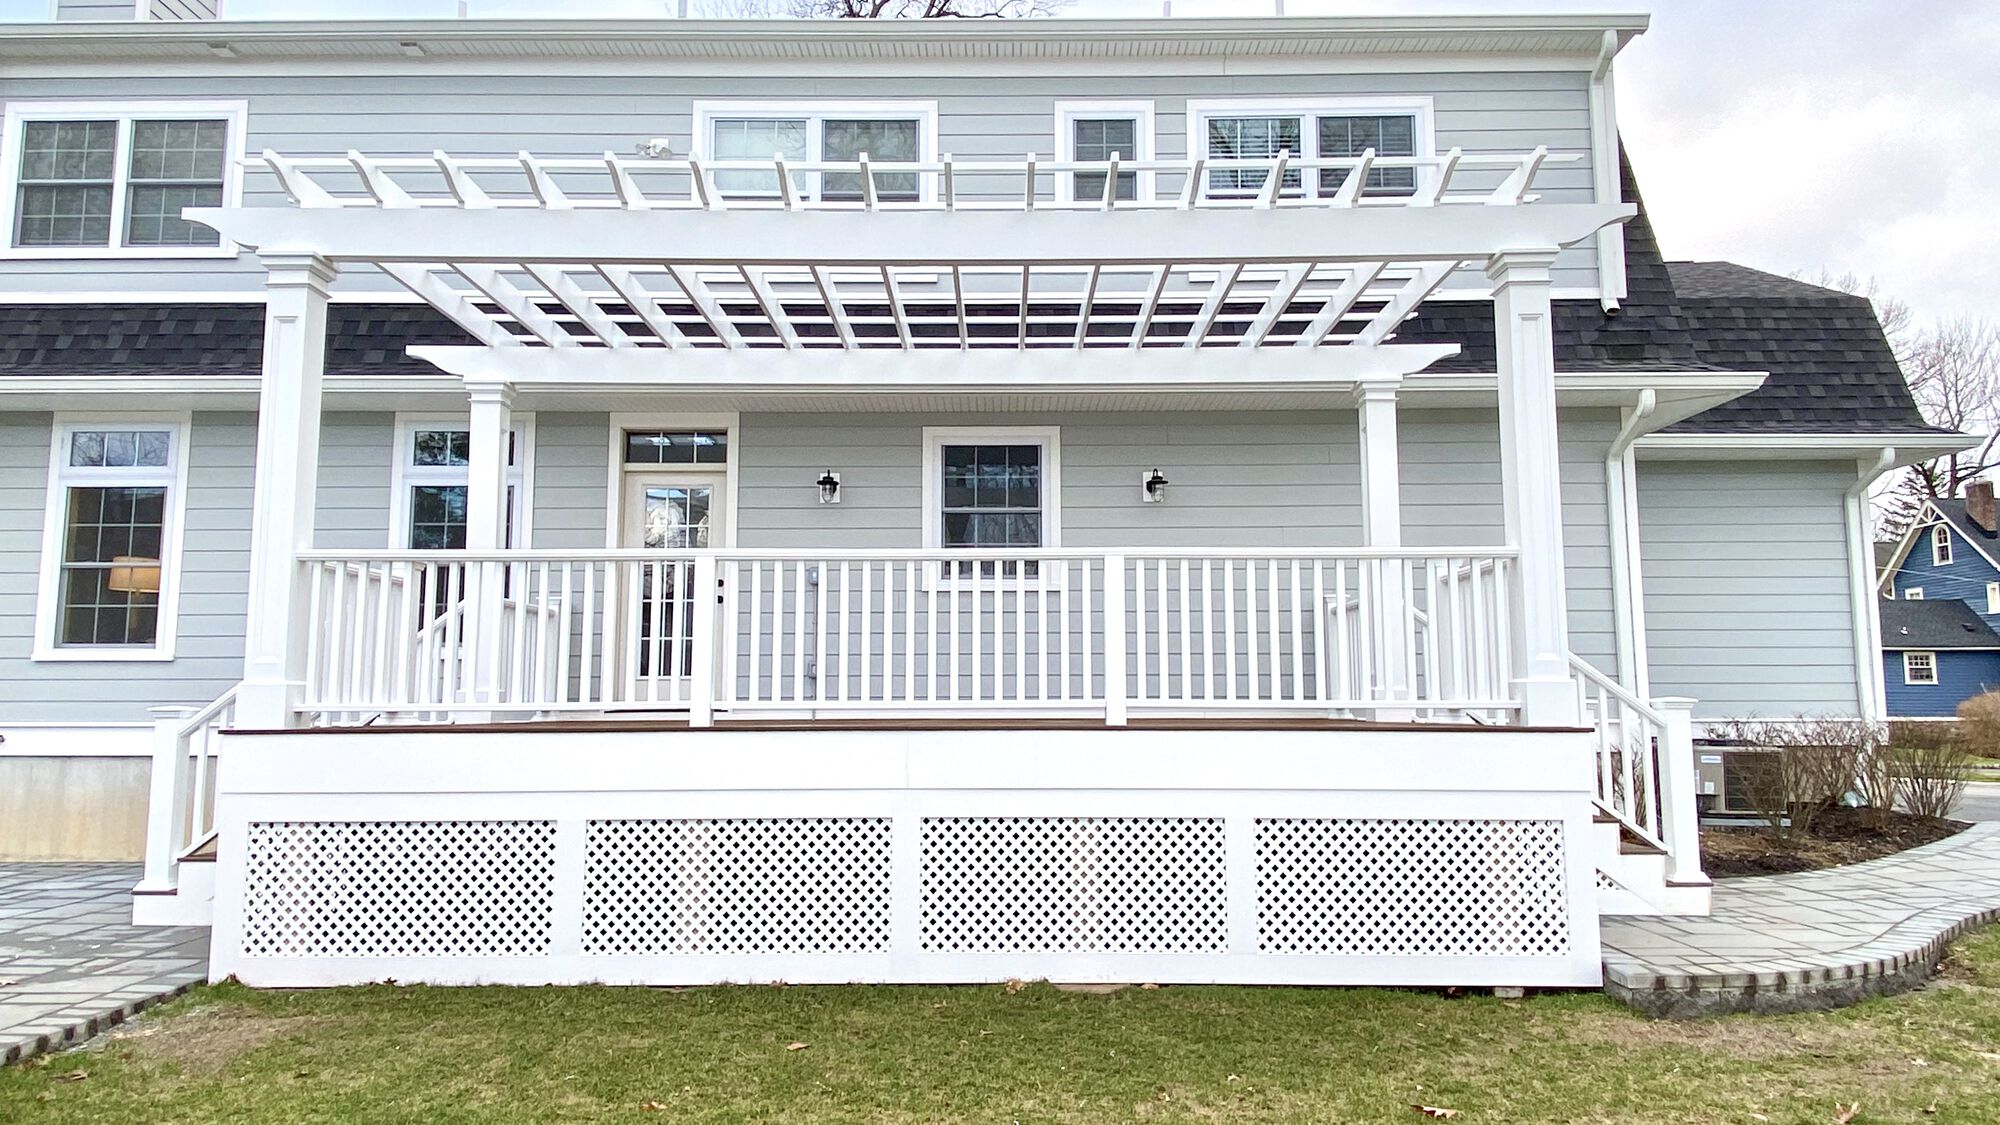 Composite Azek Deck and Pergola with Cambridge Lower Patio in Chatham, Morris County NJ